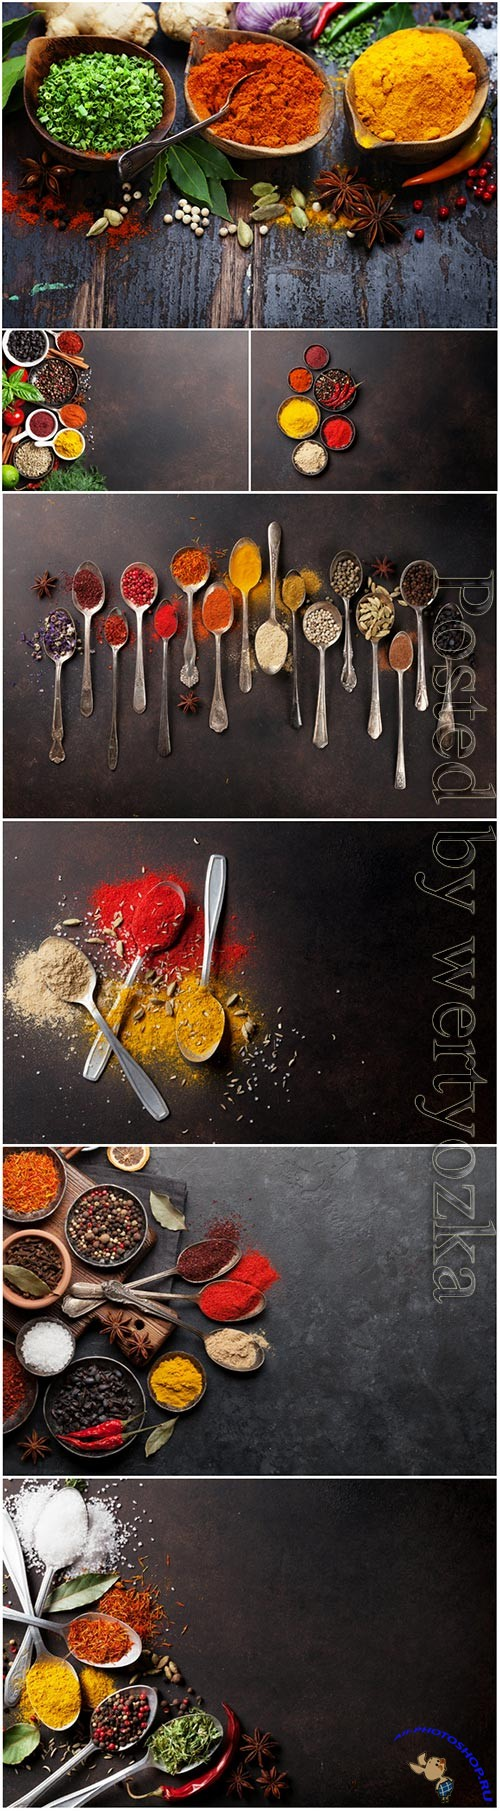 Spices on stone table stock photo